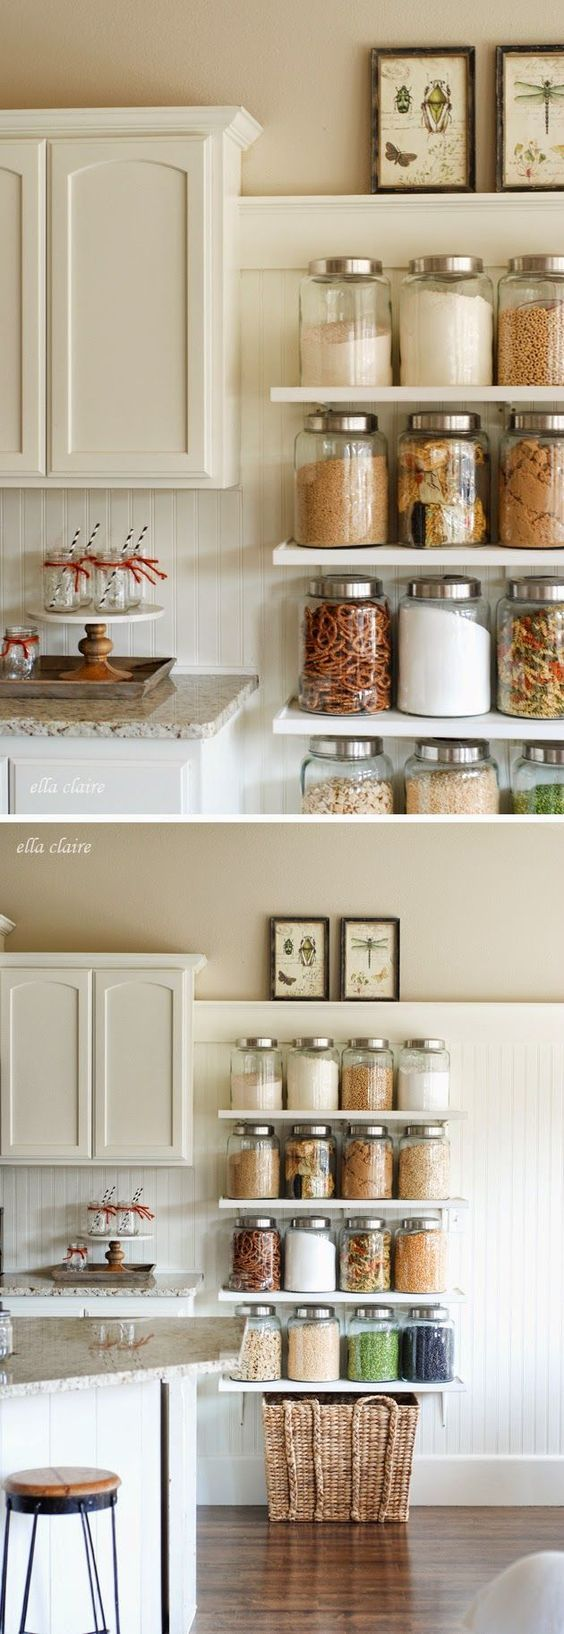 Creative Shelving 117 Best Creative Shelving Images On Pinterest  Projects Diy And